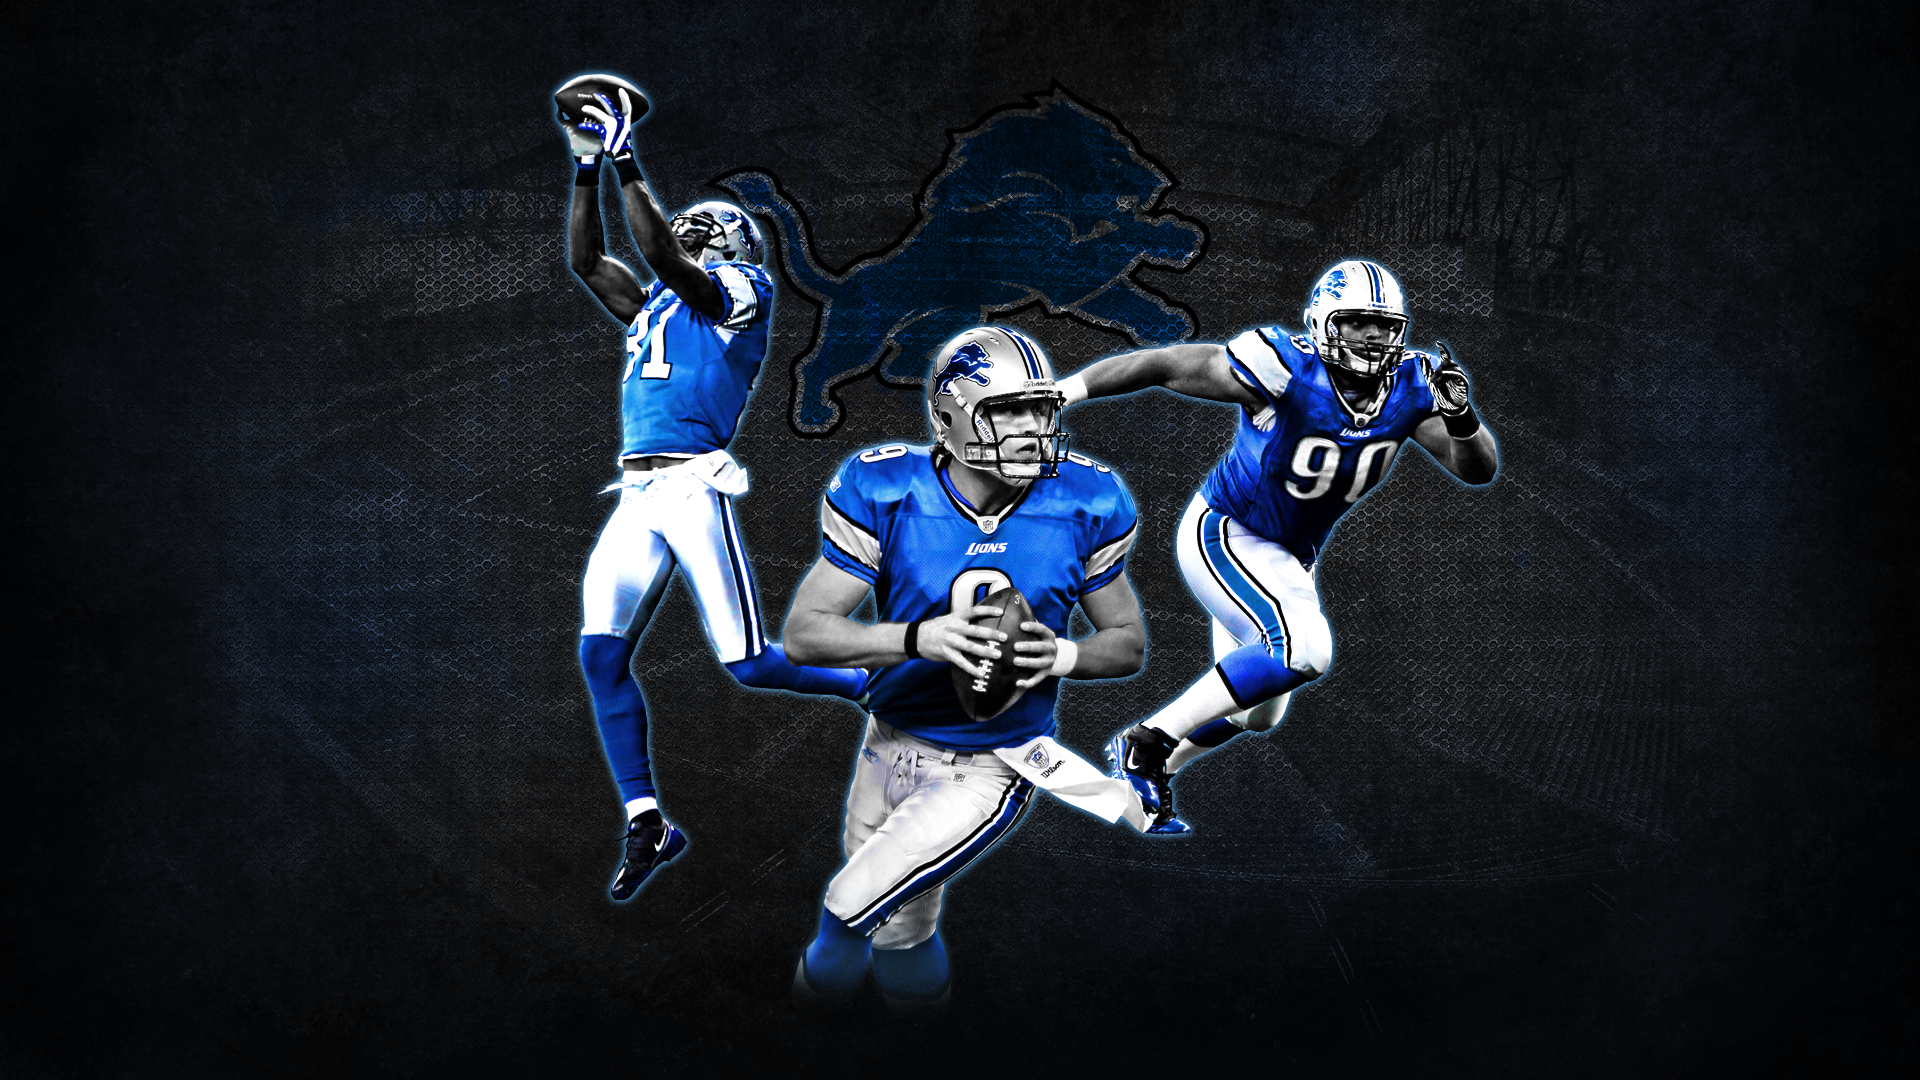 The 2014 Detroit Lions season was the franchises 85th season in the National Football League their 81st as the Detroit Lions and the first under a new coaching